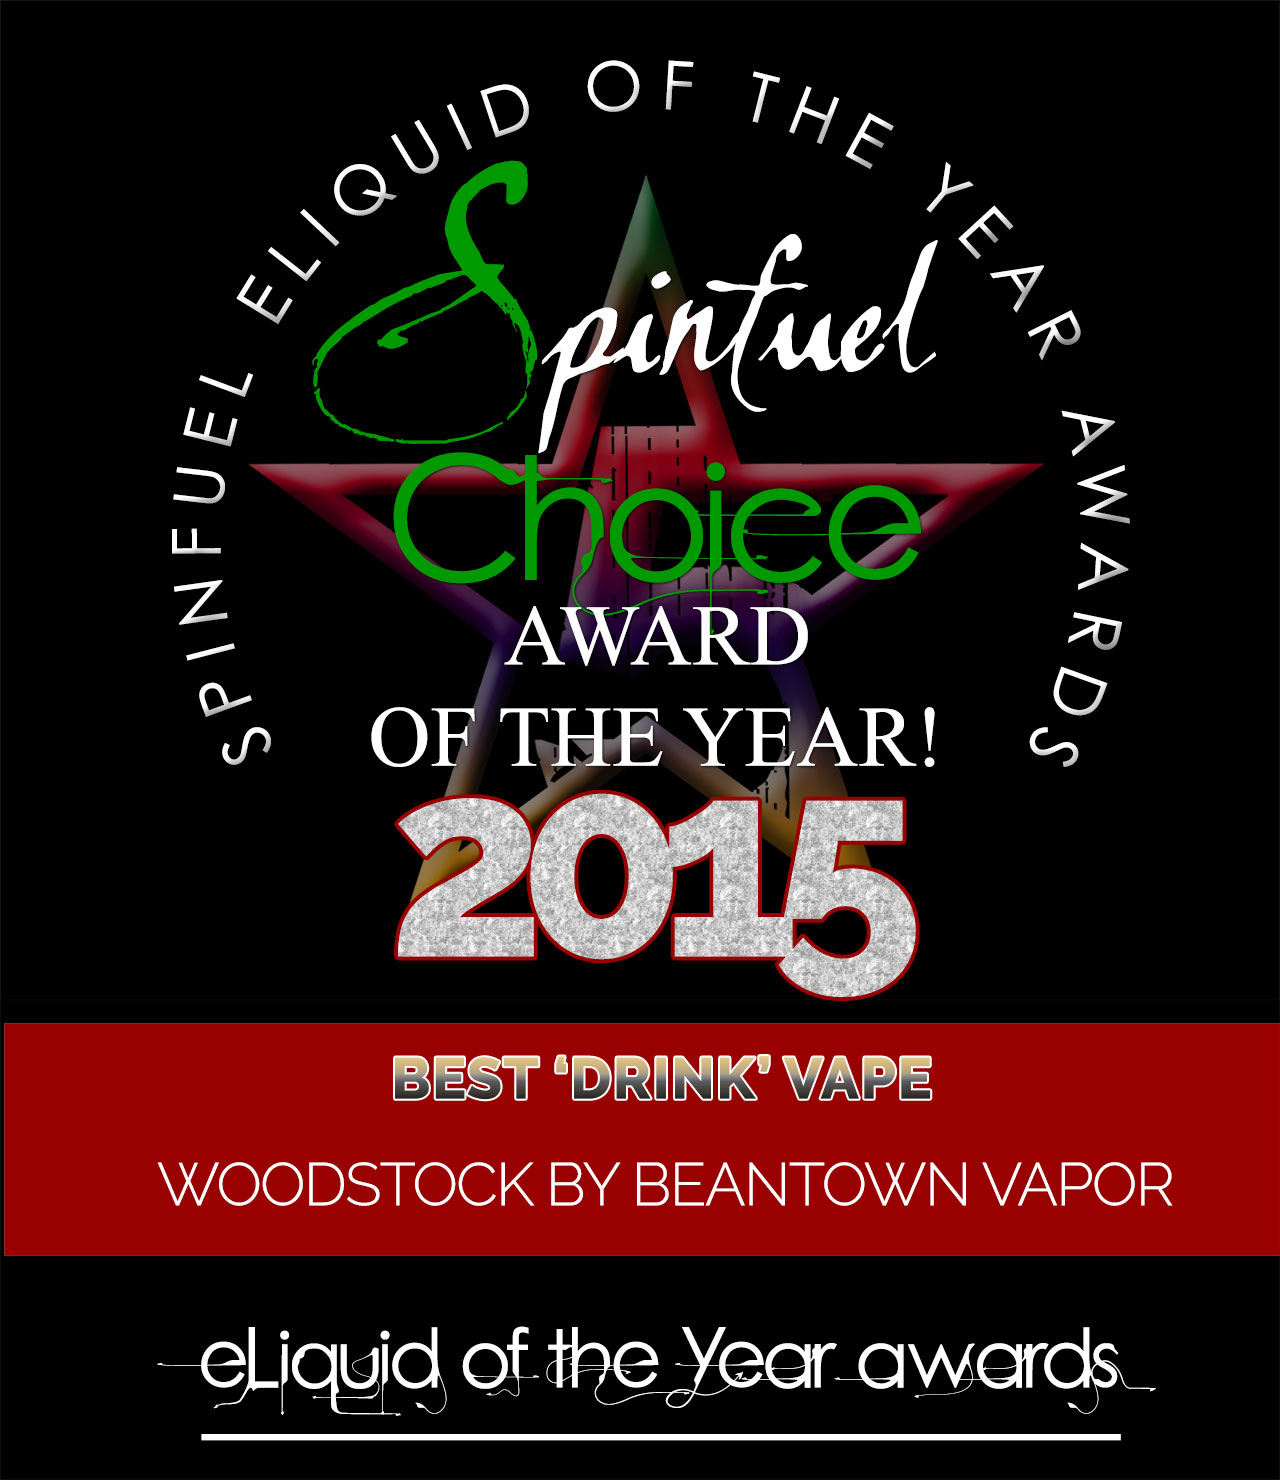 BEST DRINK BEANTOWN Vapor - SPINFUEL CHOICE AWARD 2105